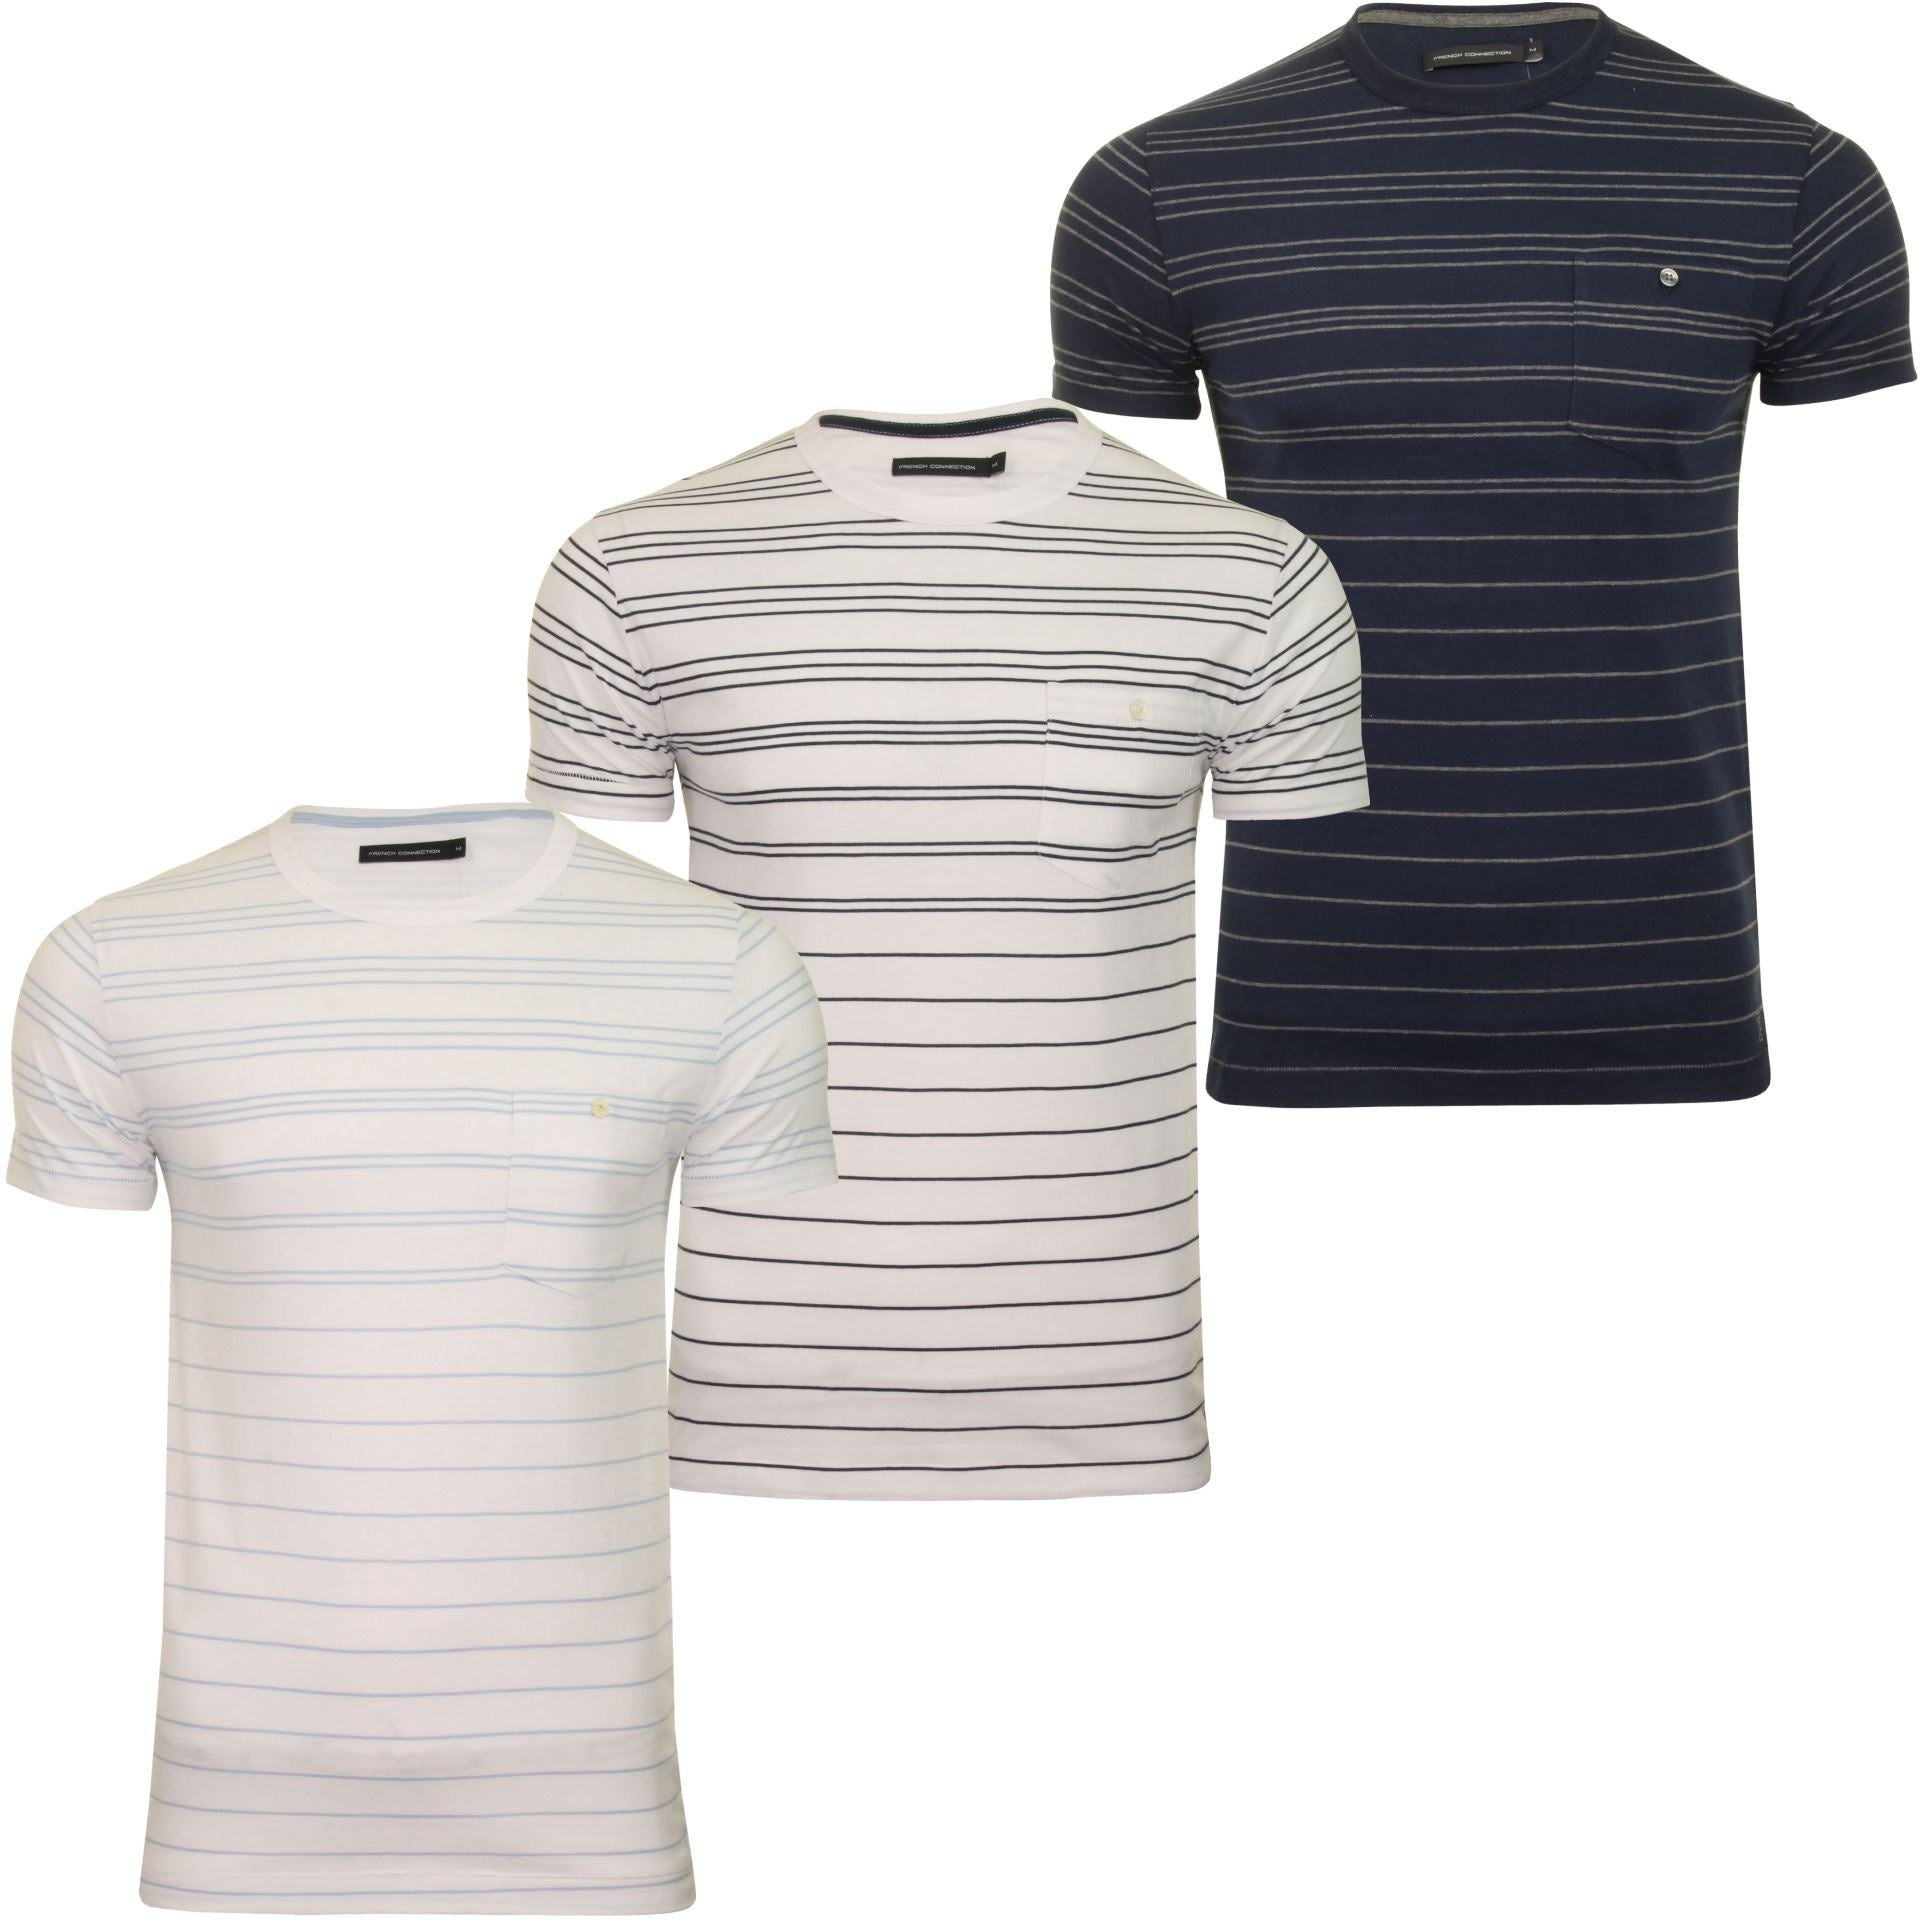 Mens T-Shirt by FCUK/French Connection Summer Graded Stripe-Main Image